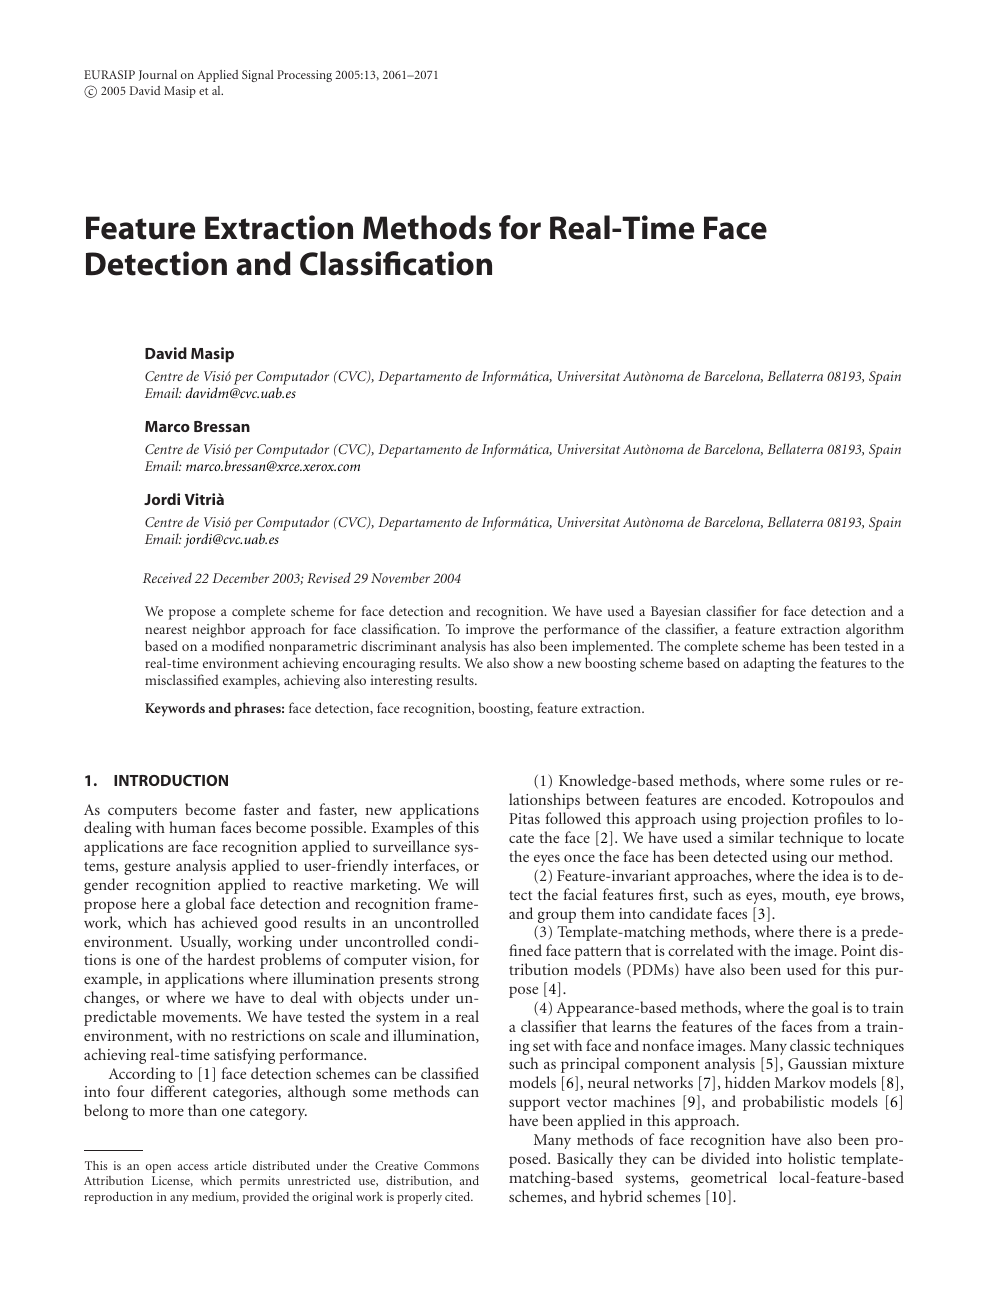 Feature Extraction Methods for Real-Time Face Detection and